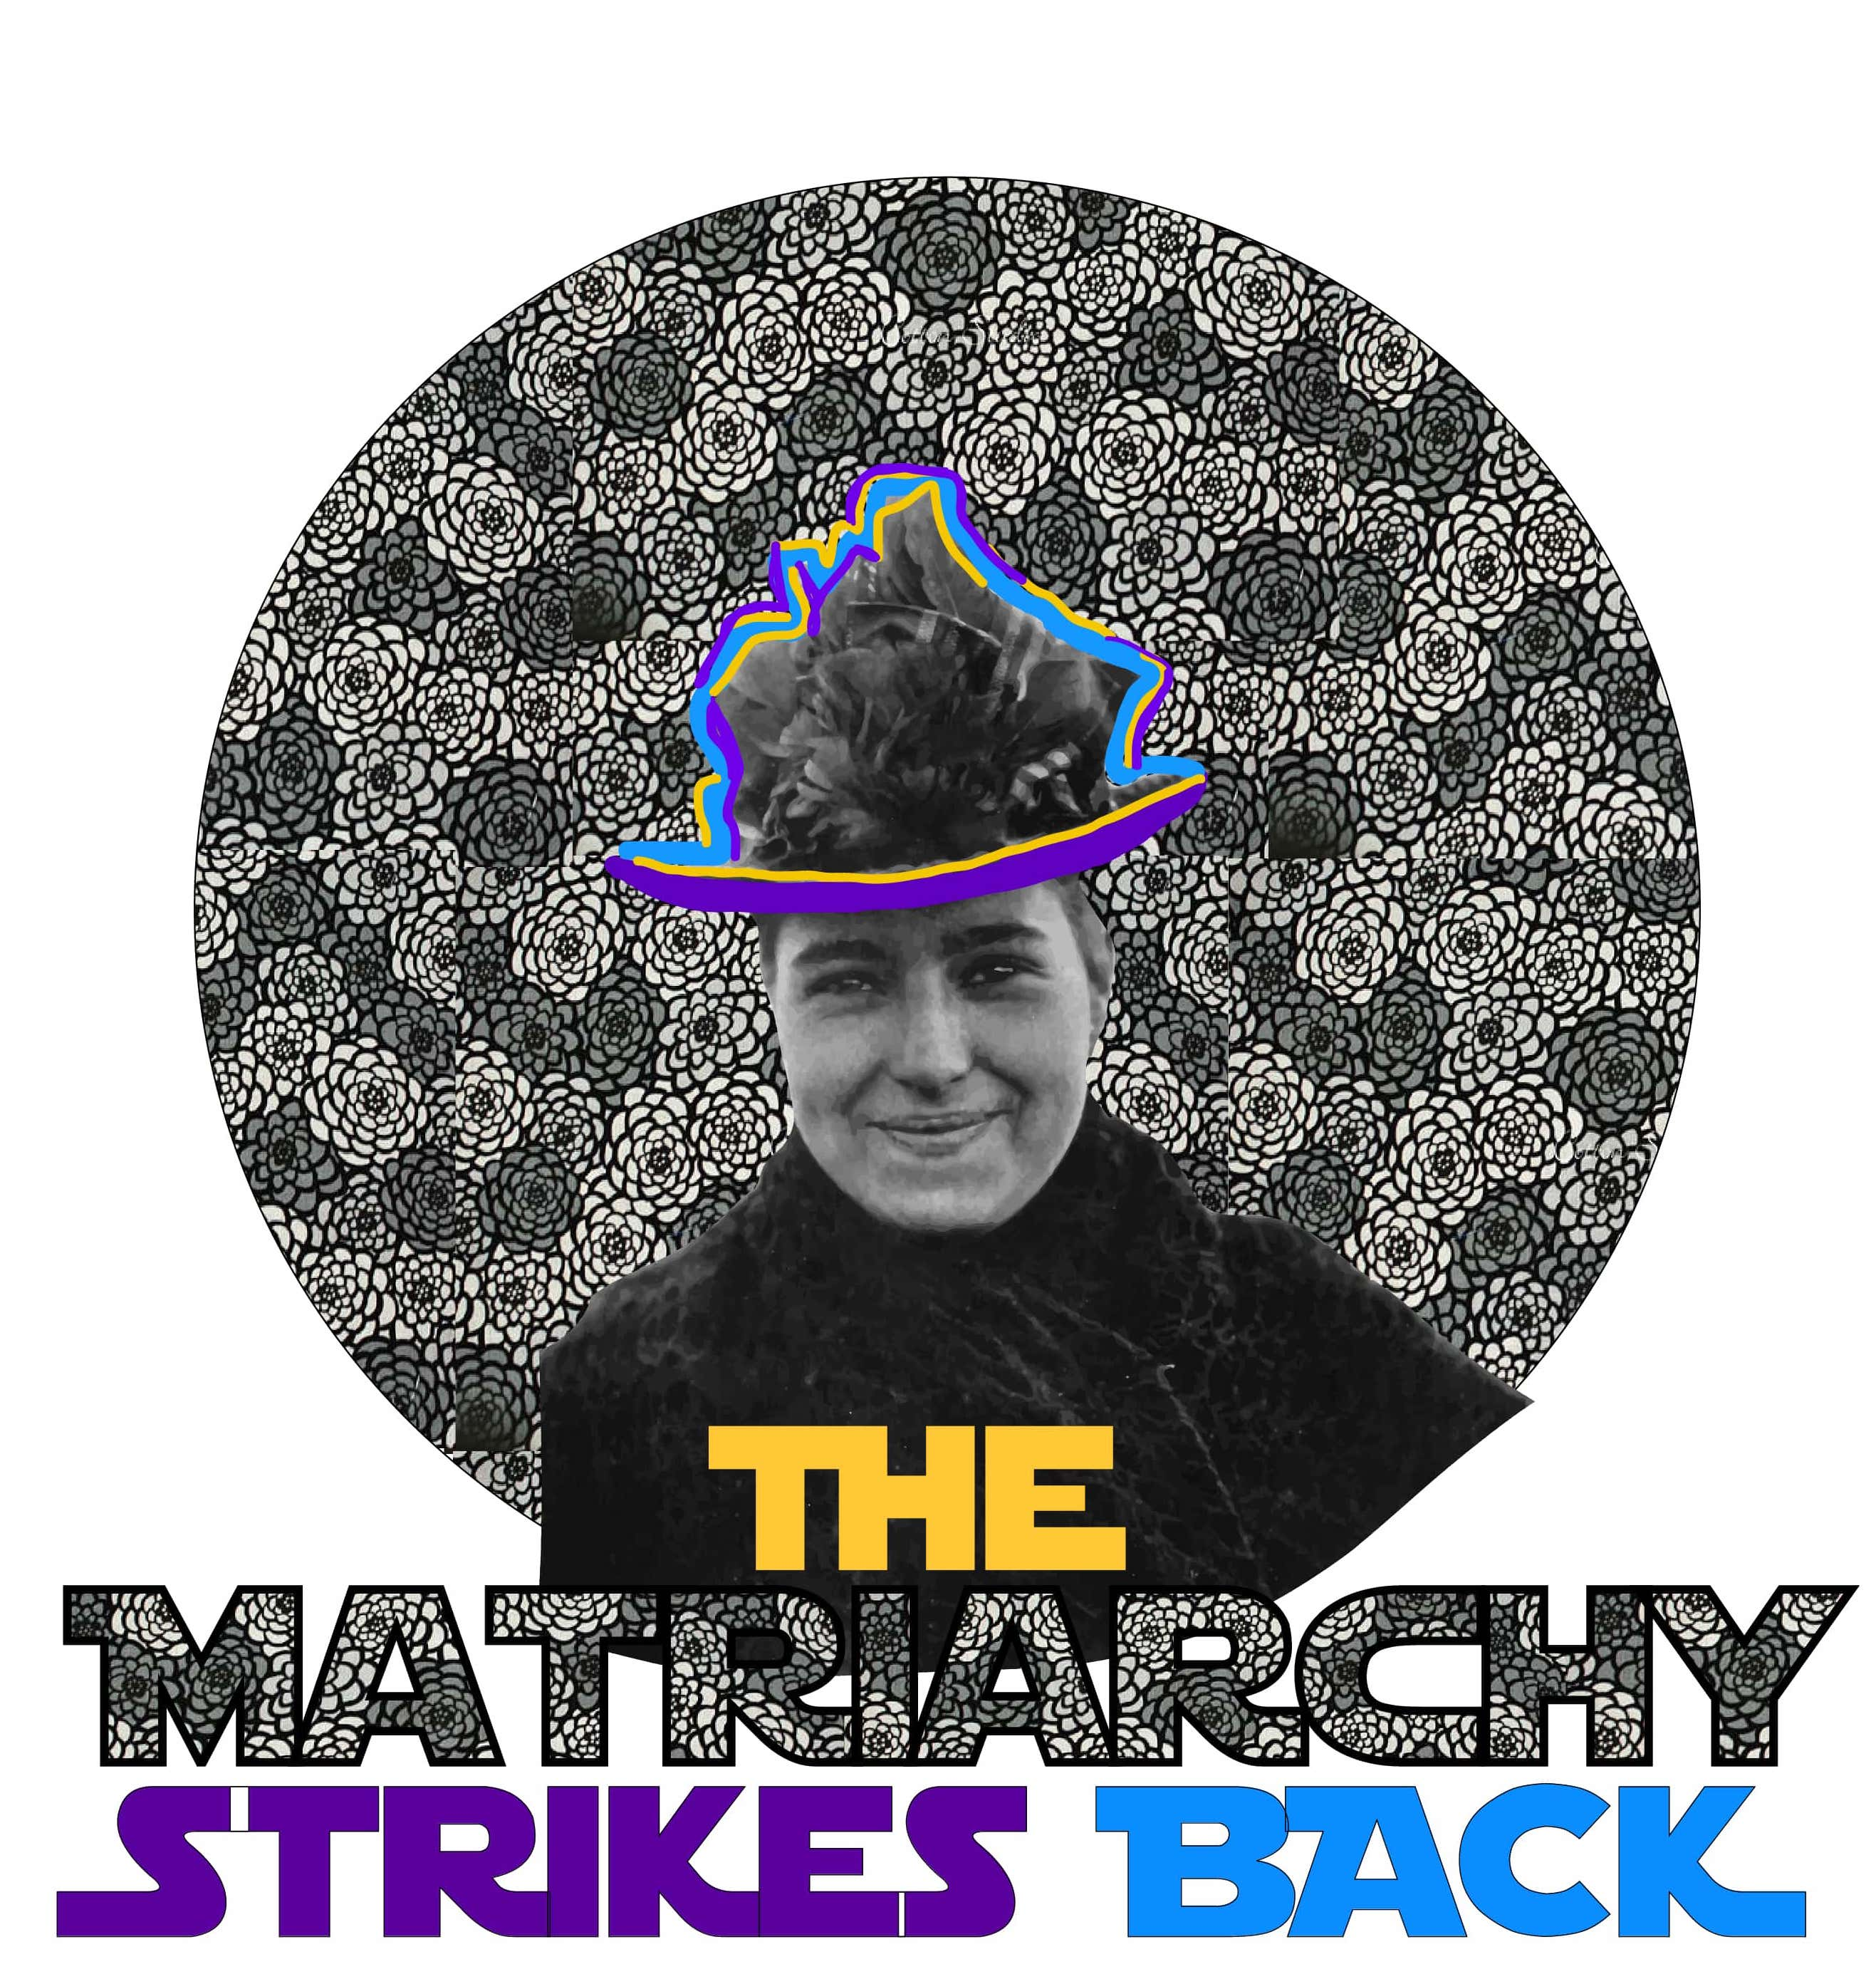 This is the design for Montevideo's The Matriarchy Strikes Back Feminist t shirt